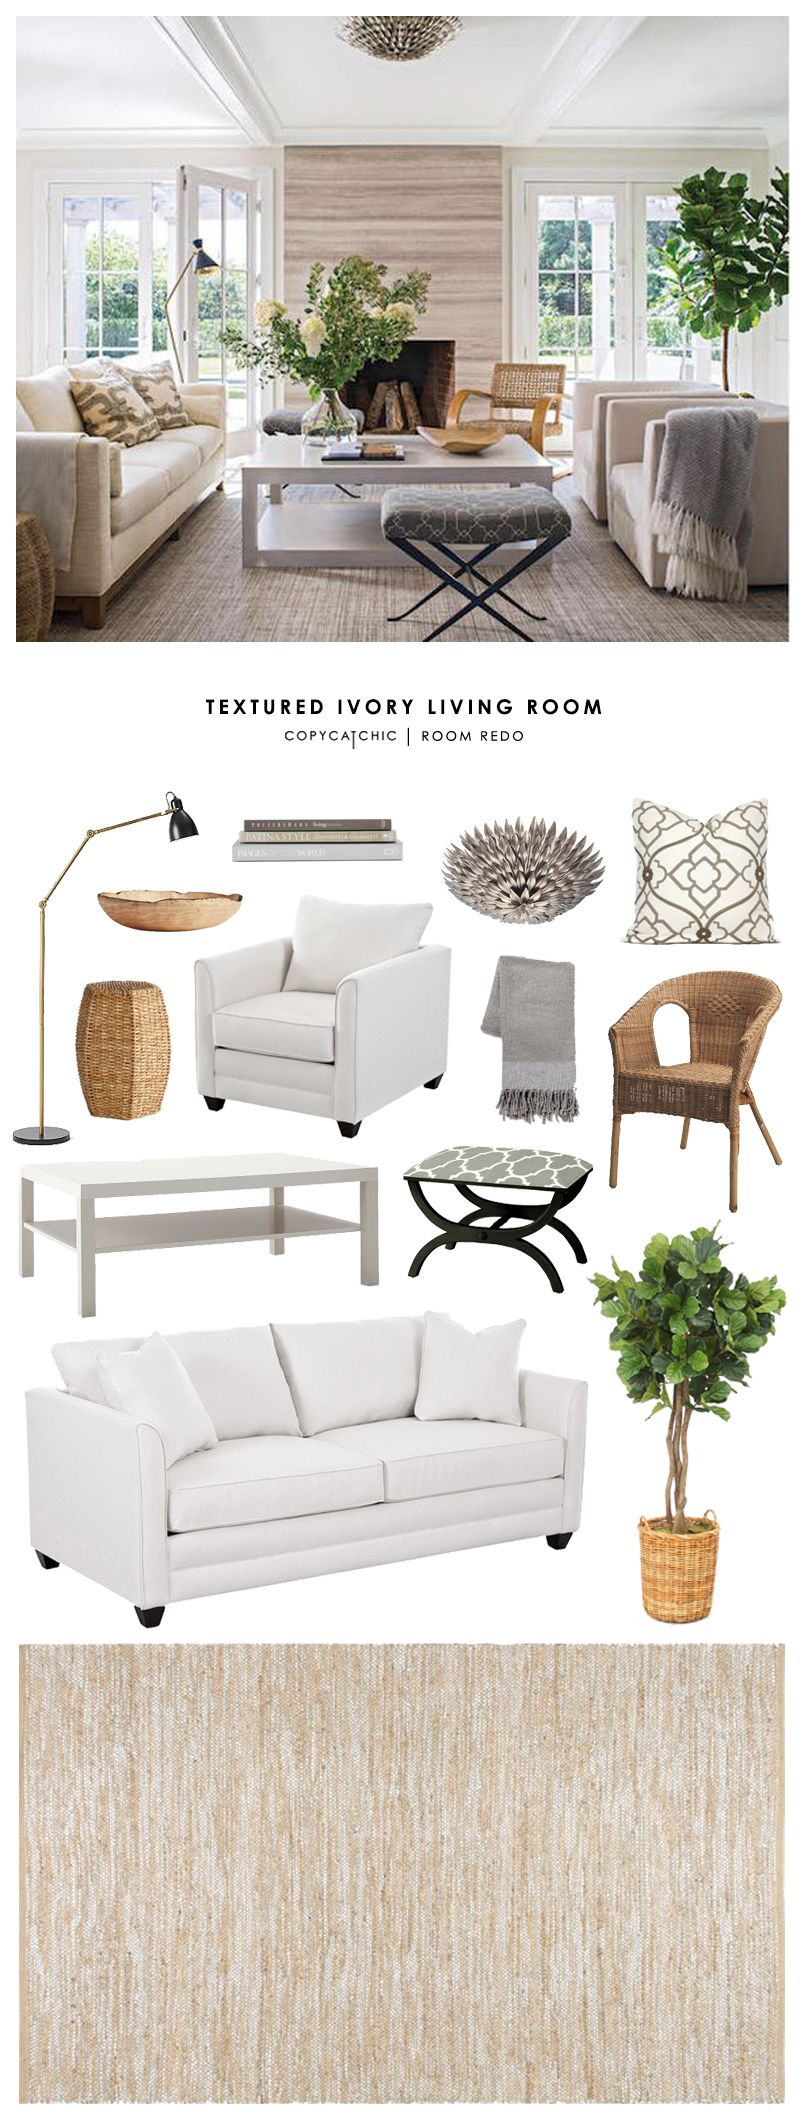 Copy Cat Chic Room Redo | Ivory living room, Copy cat chic and Copy cats